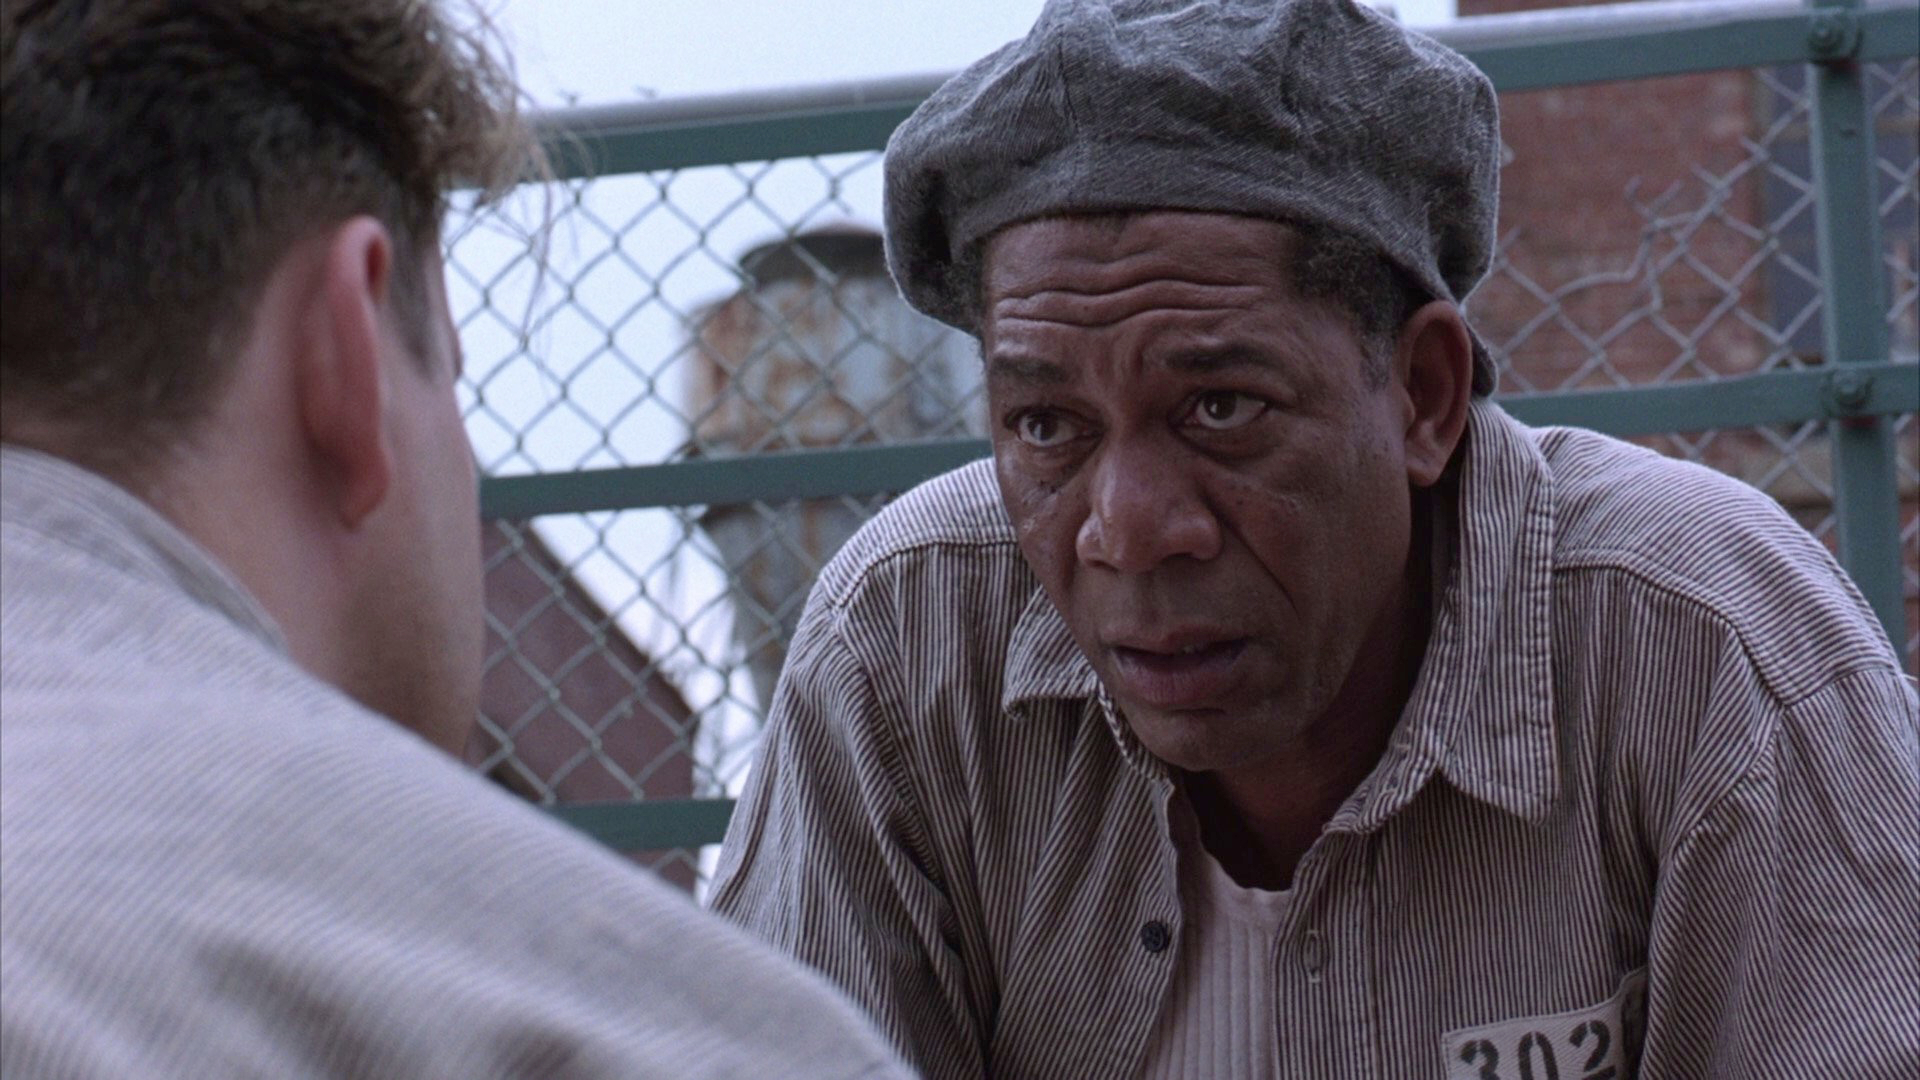 The Shawshank Redemption--an argument for hope